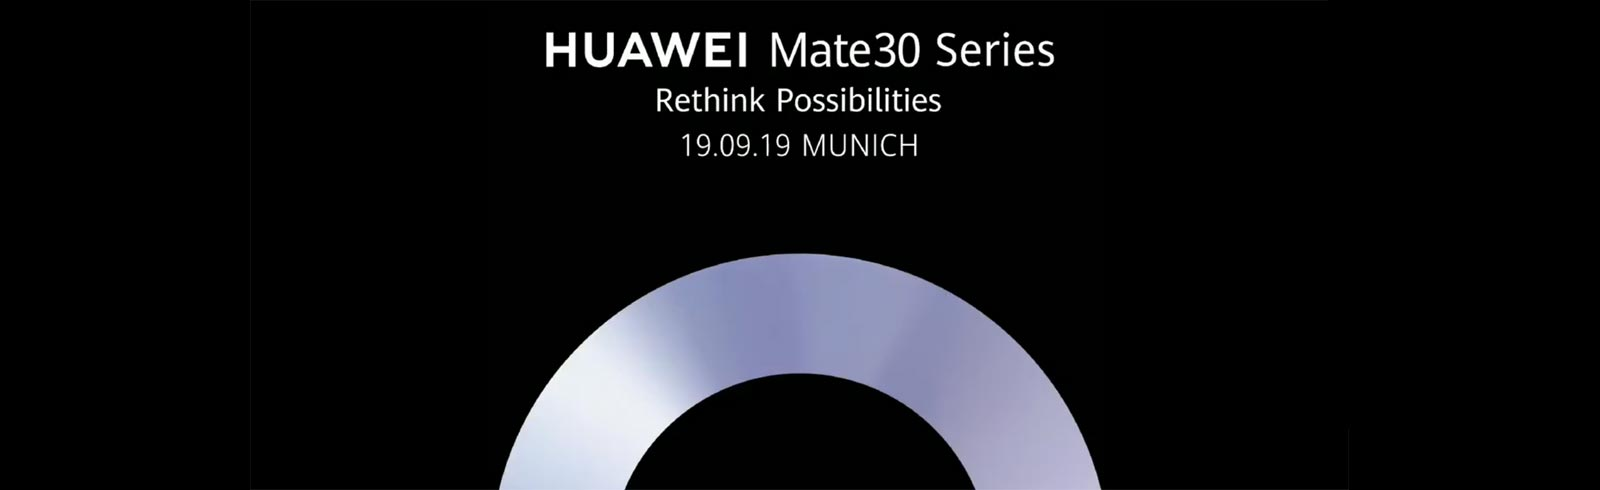 The Huawei Mate 30 series will be announced on September 19th